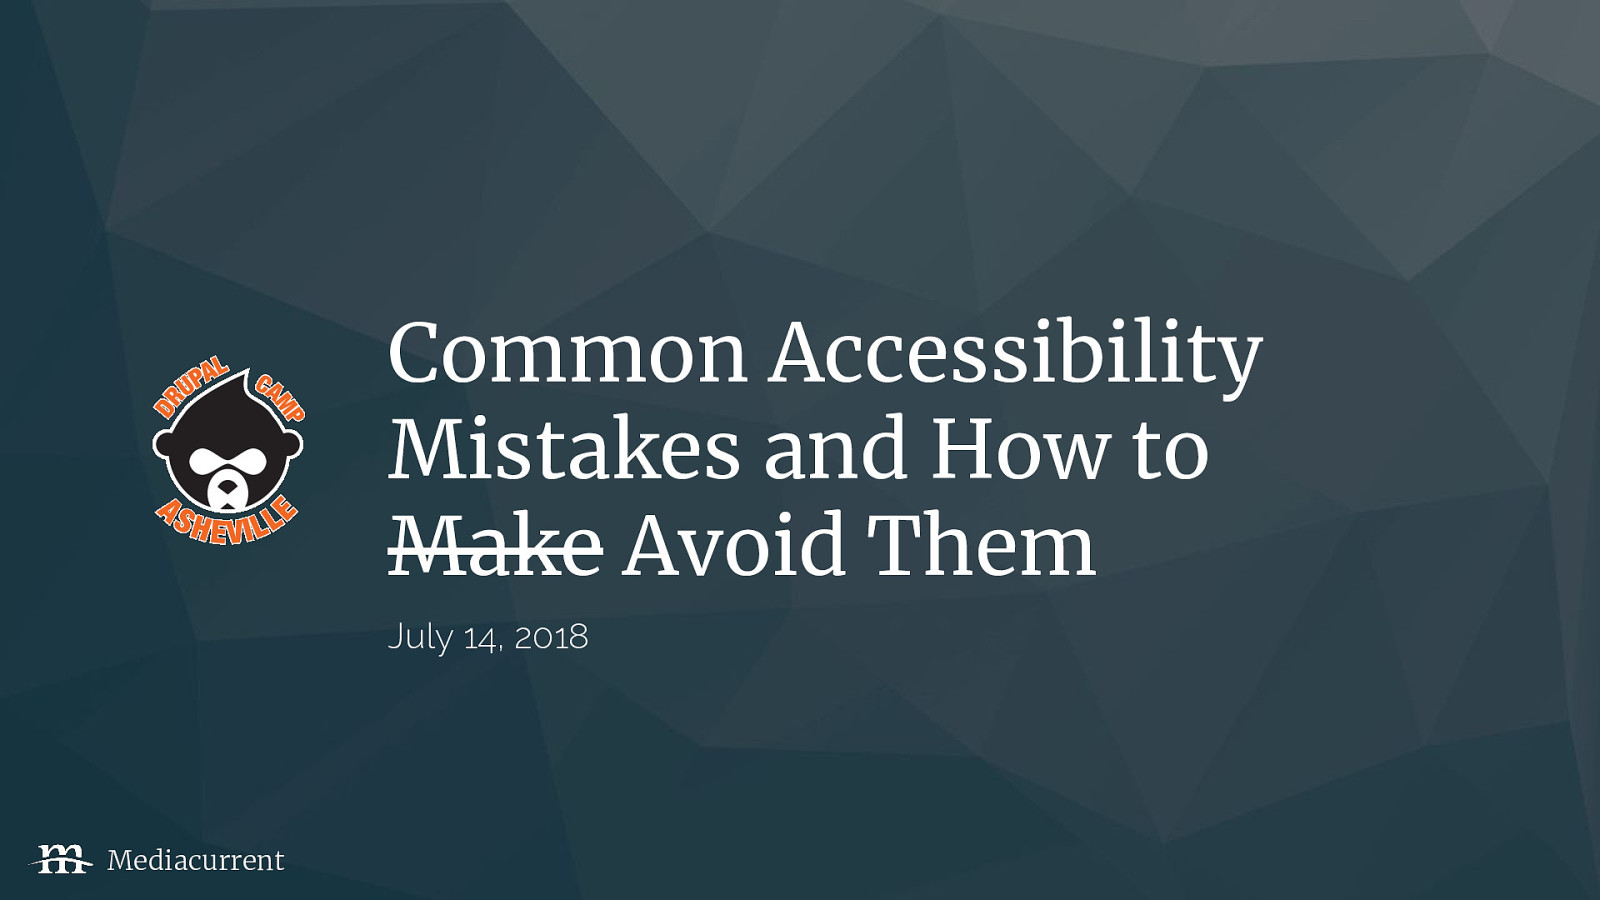 Common accessibility mistakes and how to avoid them